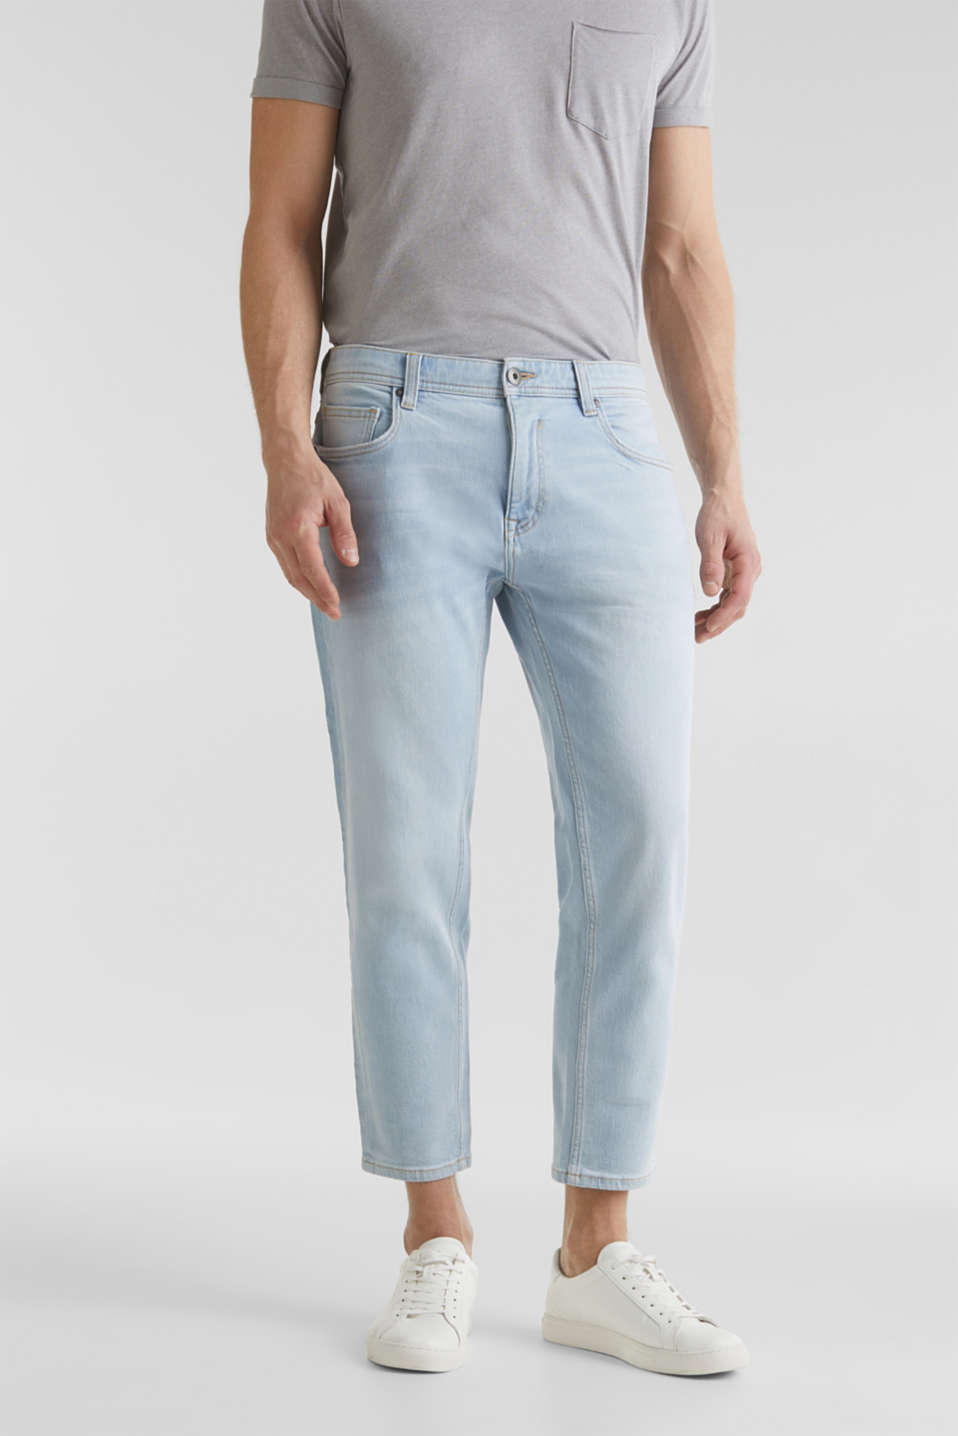 edc - Ankle-length jeans containing organic cotton